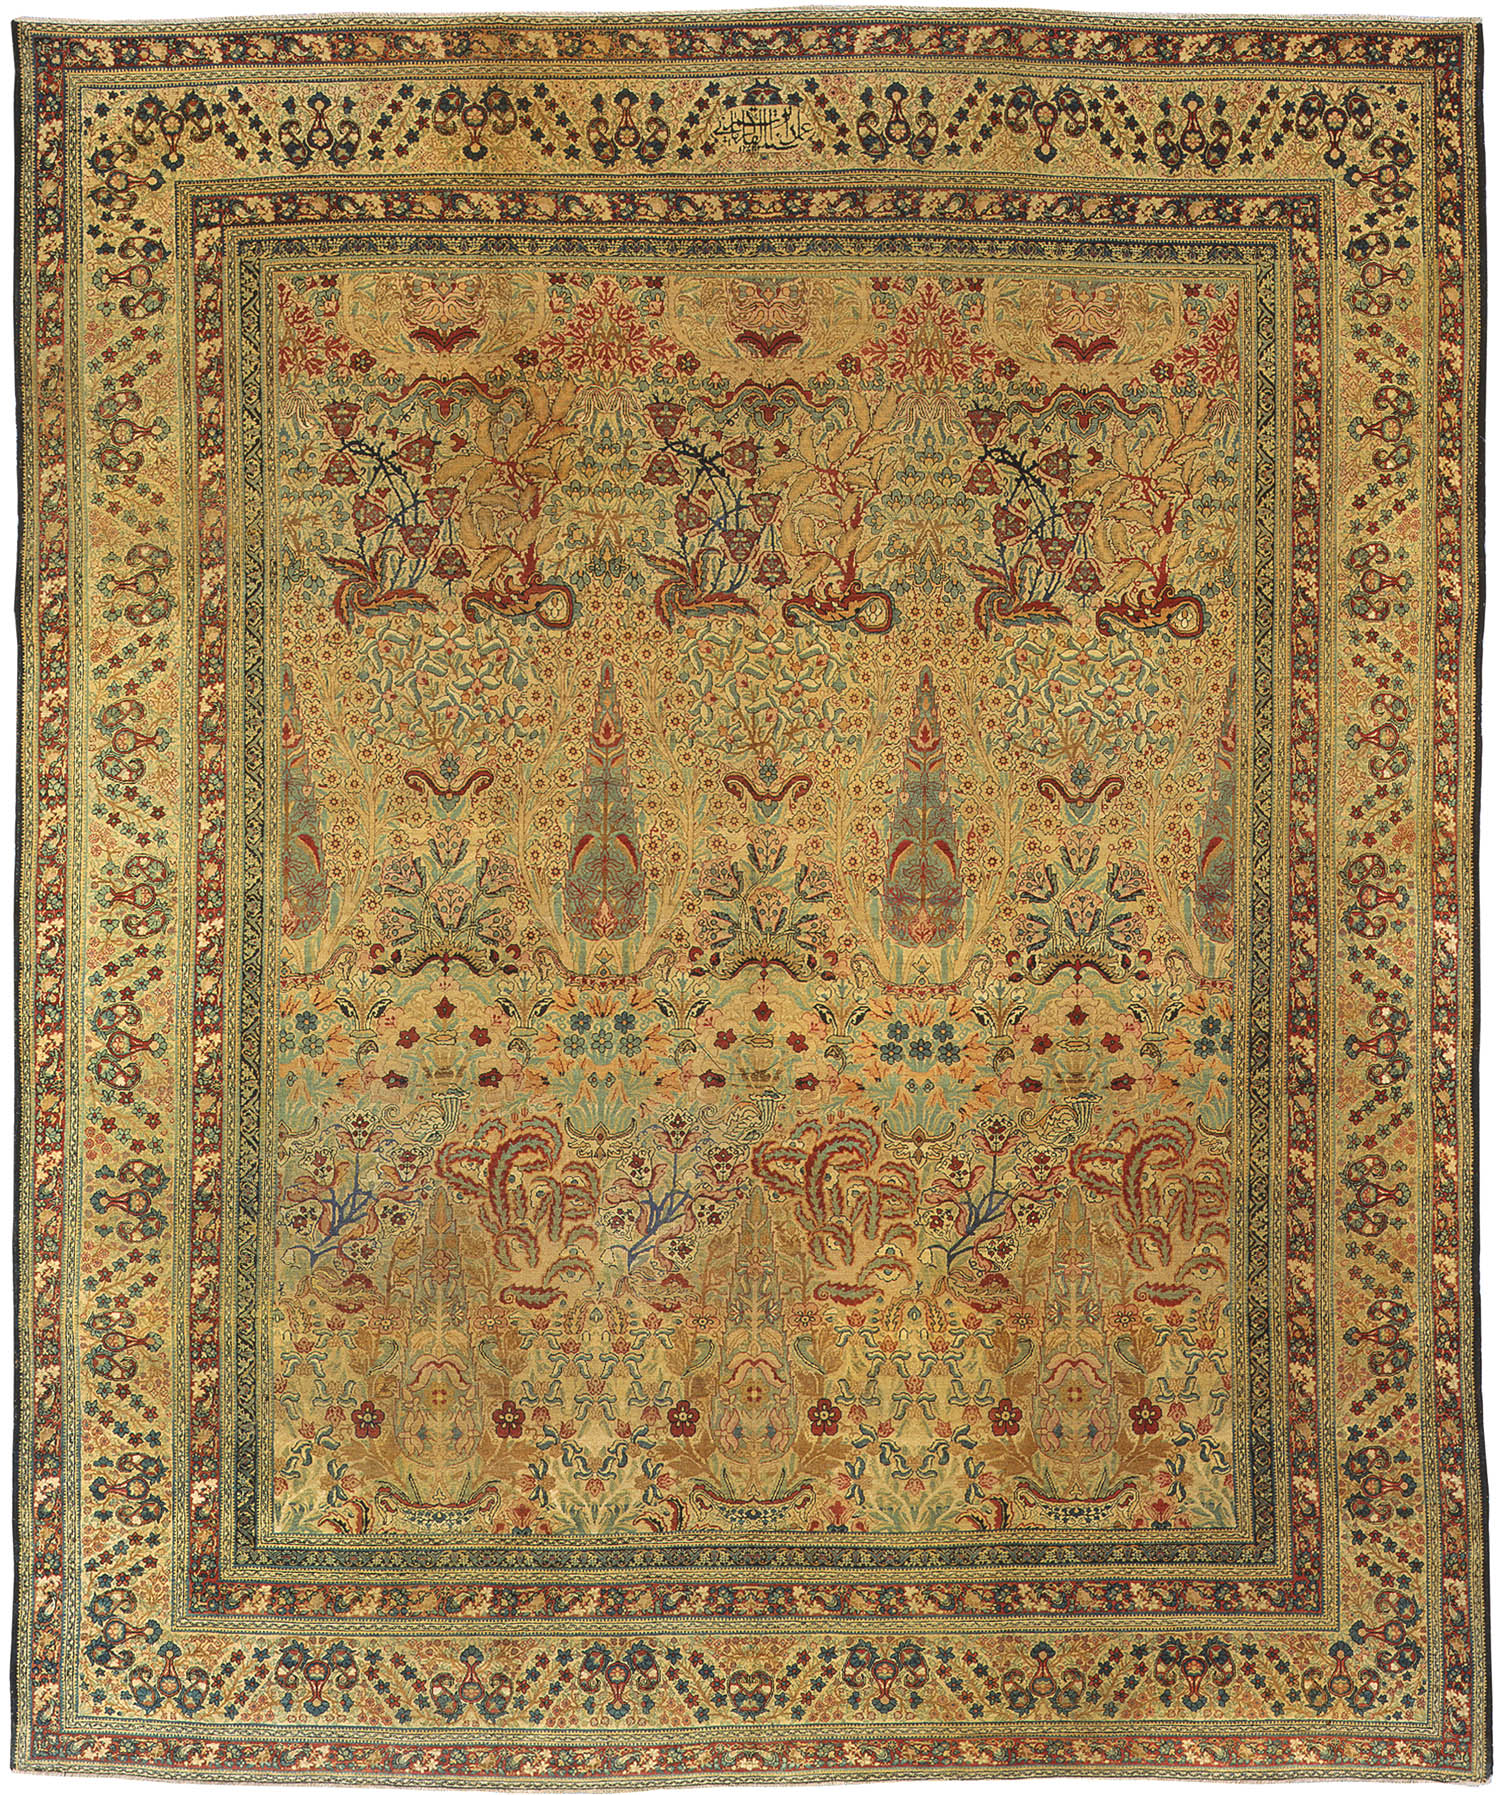 antique rugs antique kerman persian rug by kermani 3416 by nazmiyal WVHWEBO